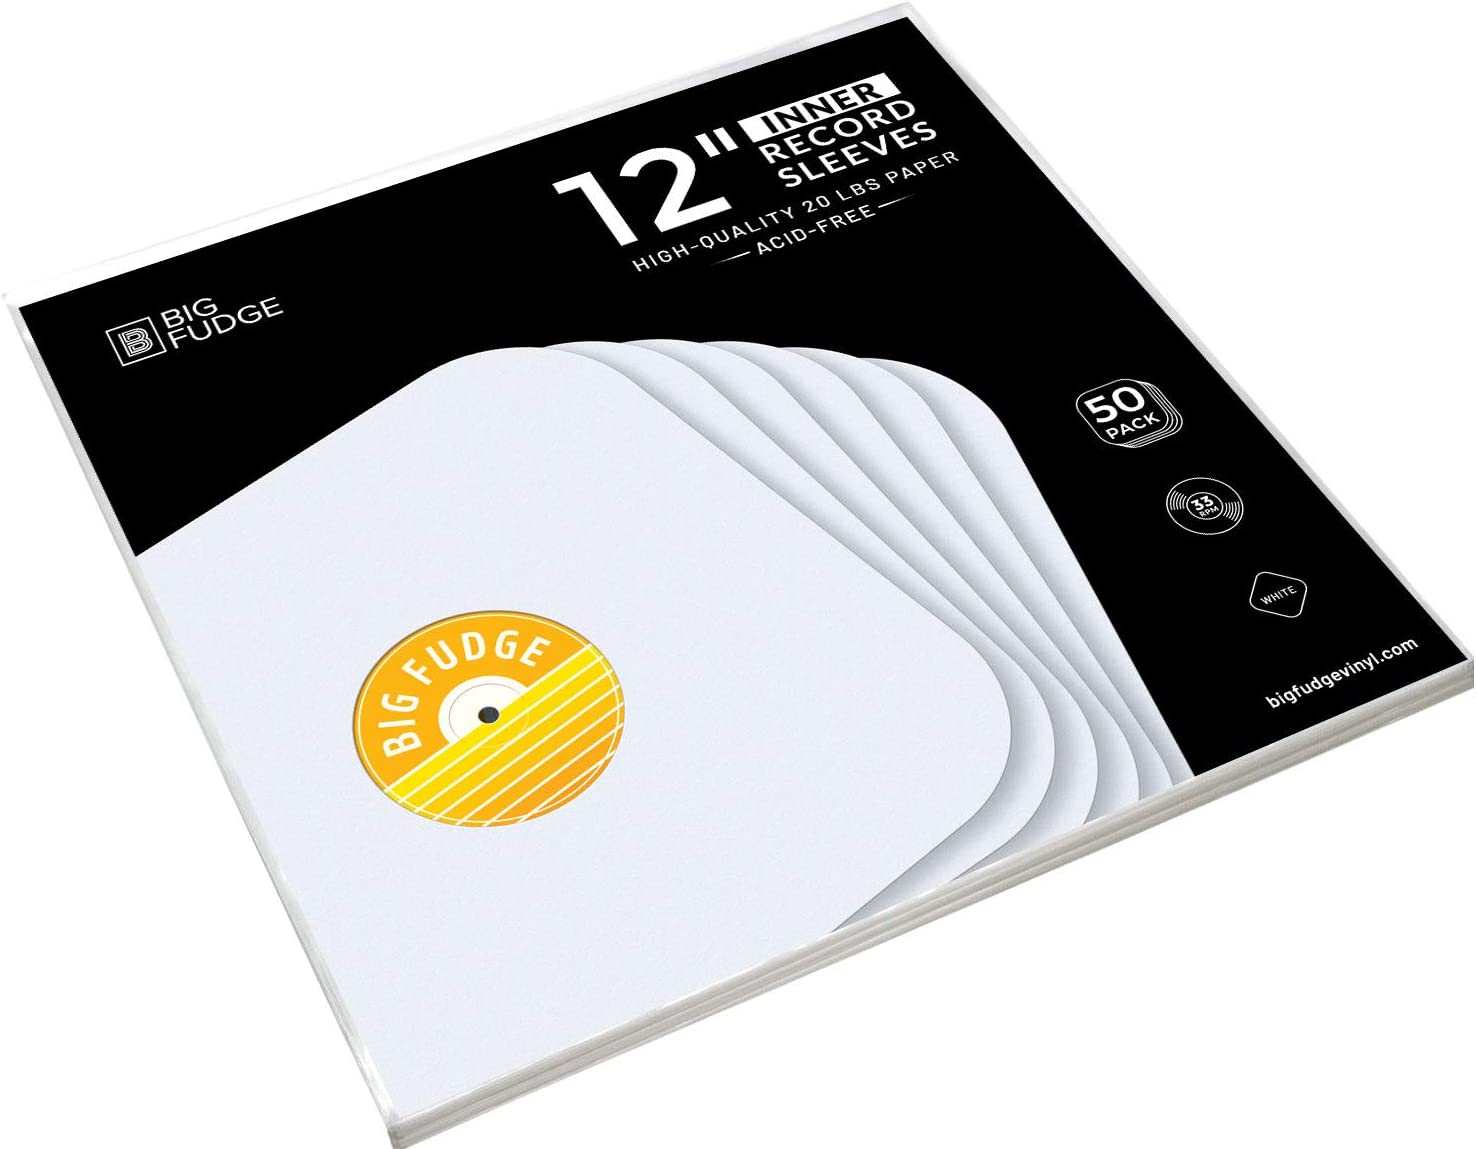 Heavy 20# Weight Paper with Hole for Viewing Label 1000 12 LP//Album White Paper Vinyl Record Sleeves//Protectors